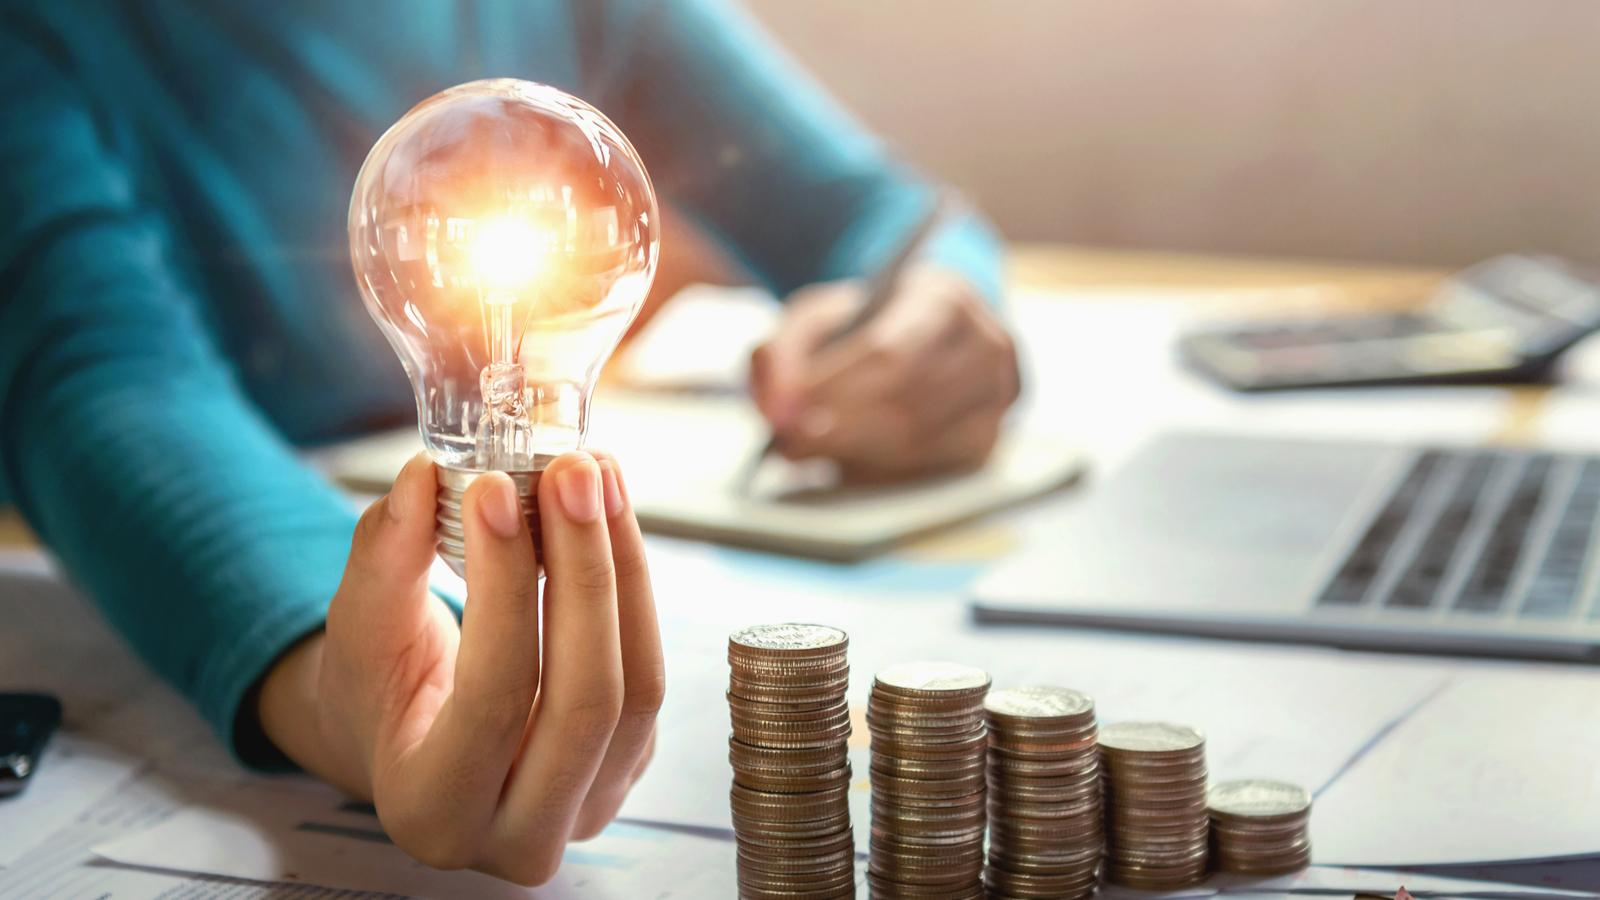 Woman Calculating Finances and Holding Lightbulb with Stack of Coins on Table